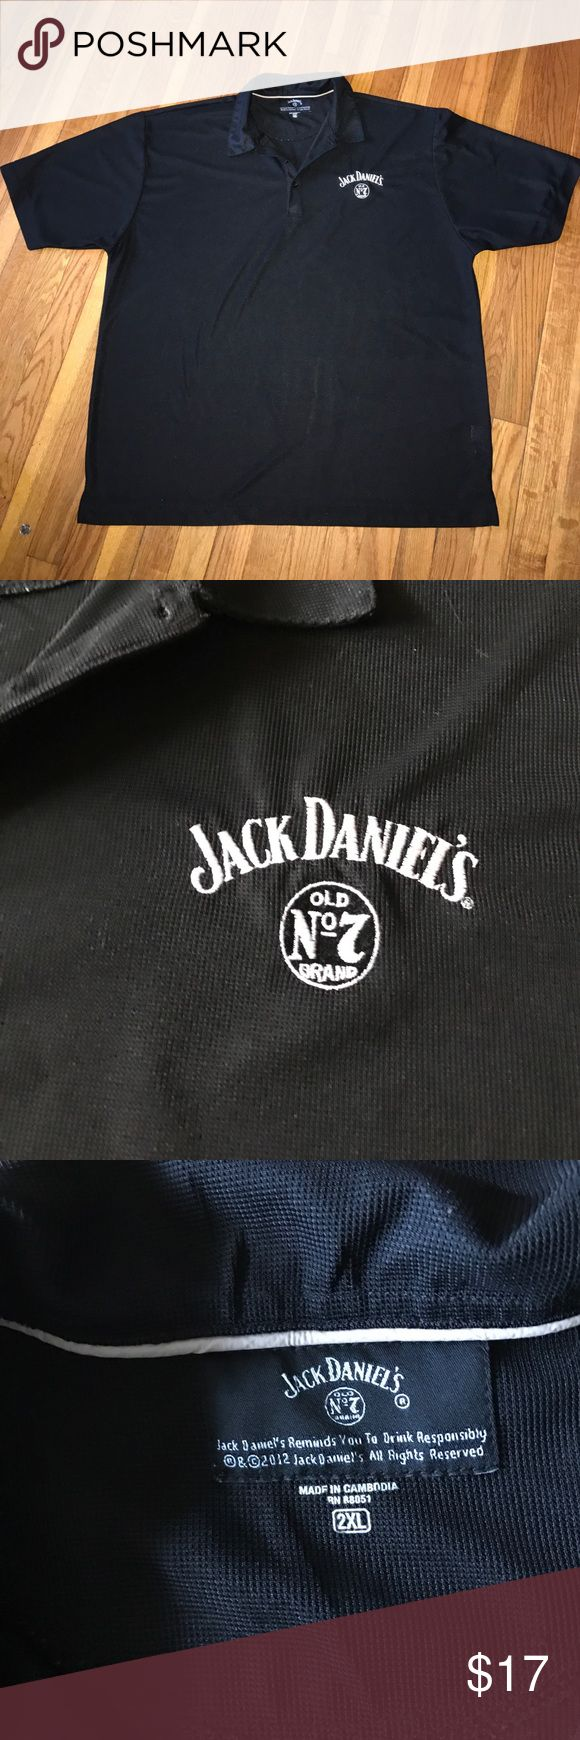 Jack Daniel's Waffle Polo Golf Shirt Short was purchased at the Jack Daniel's plant in Lynchburg, Tennessee. Shirt has waffle mesh Knit to keep you cool in the summer. 100% authentic. Has Jack Daniel's logo embroidered on left chest. In excellent condition! Jack Daniel's Shirts Polos